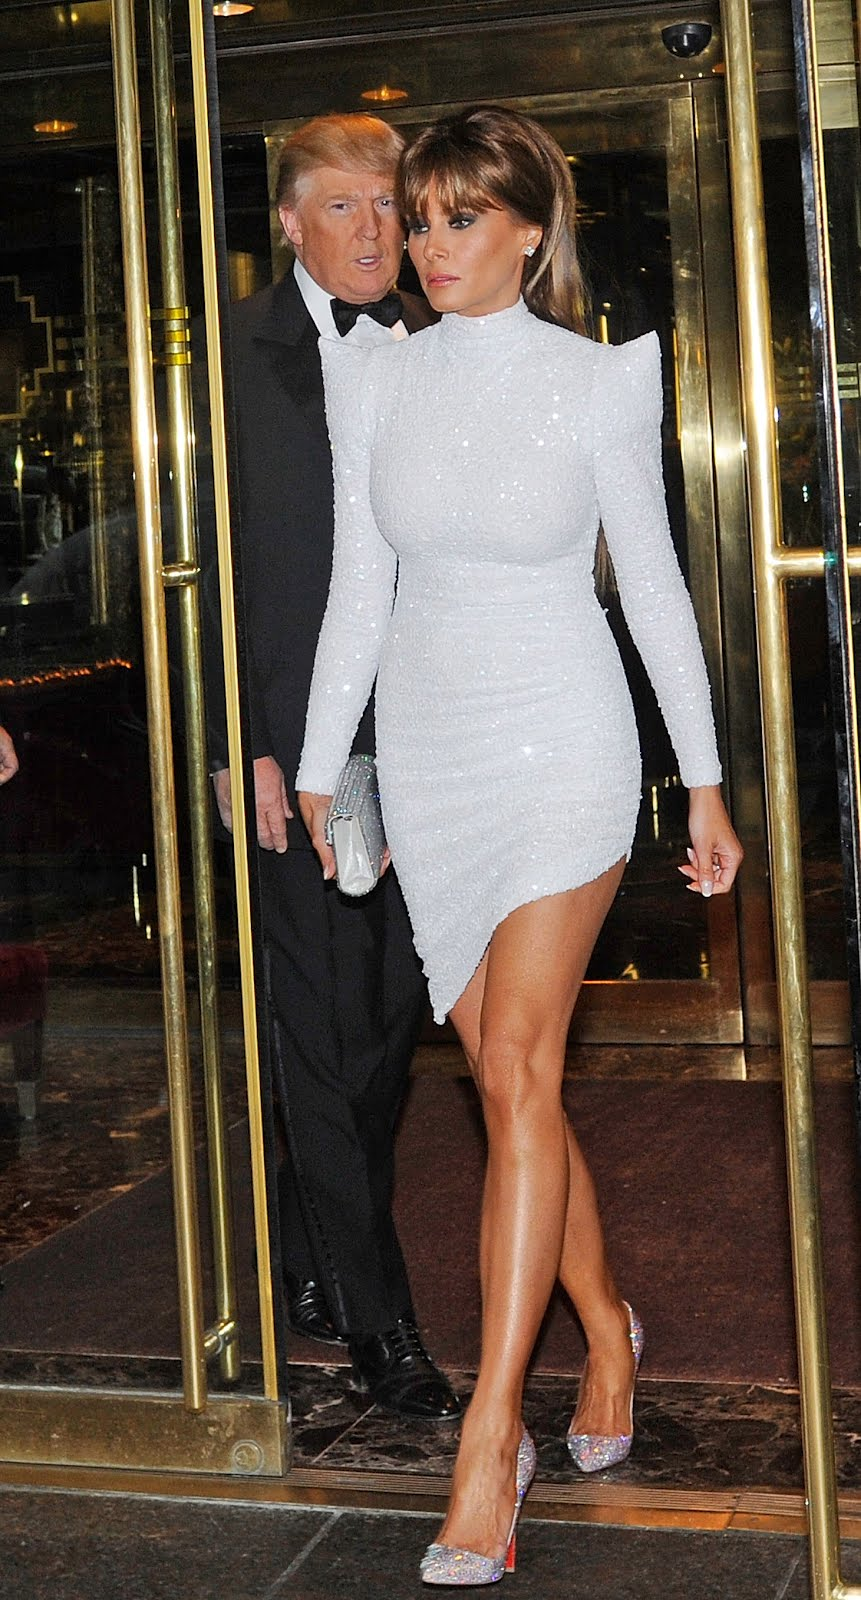 Cleavage Melania Trump nude (31 photos), Topless, Paparazzi, Feet, cleavage 2018